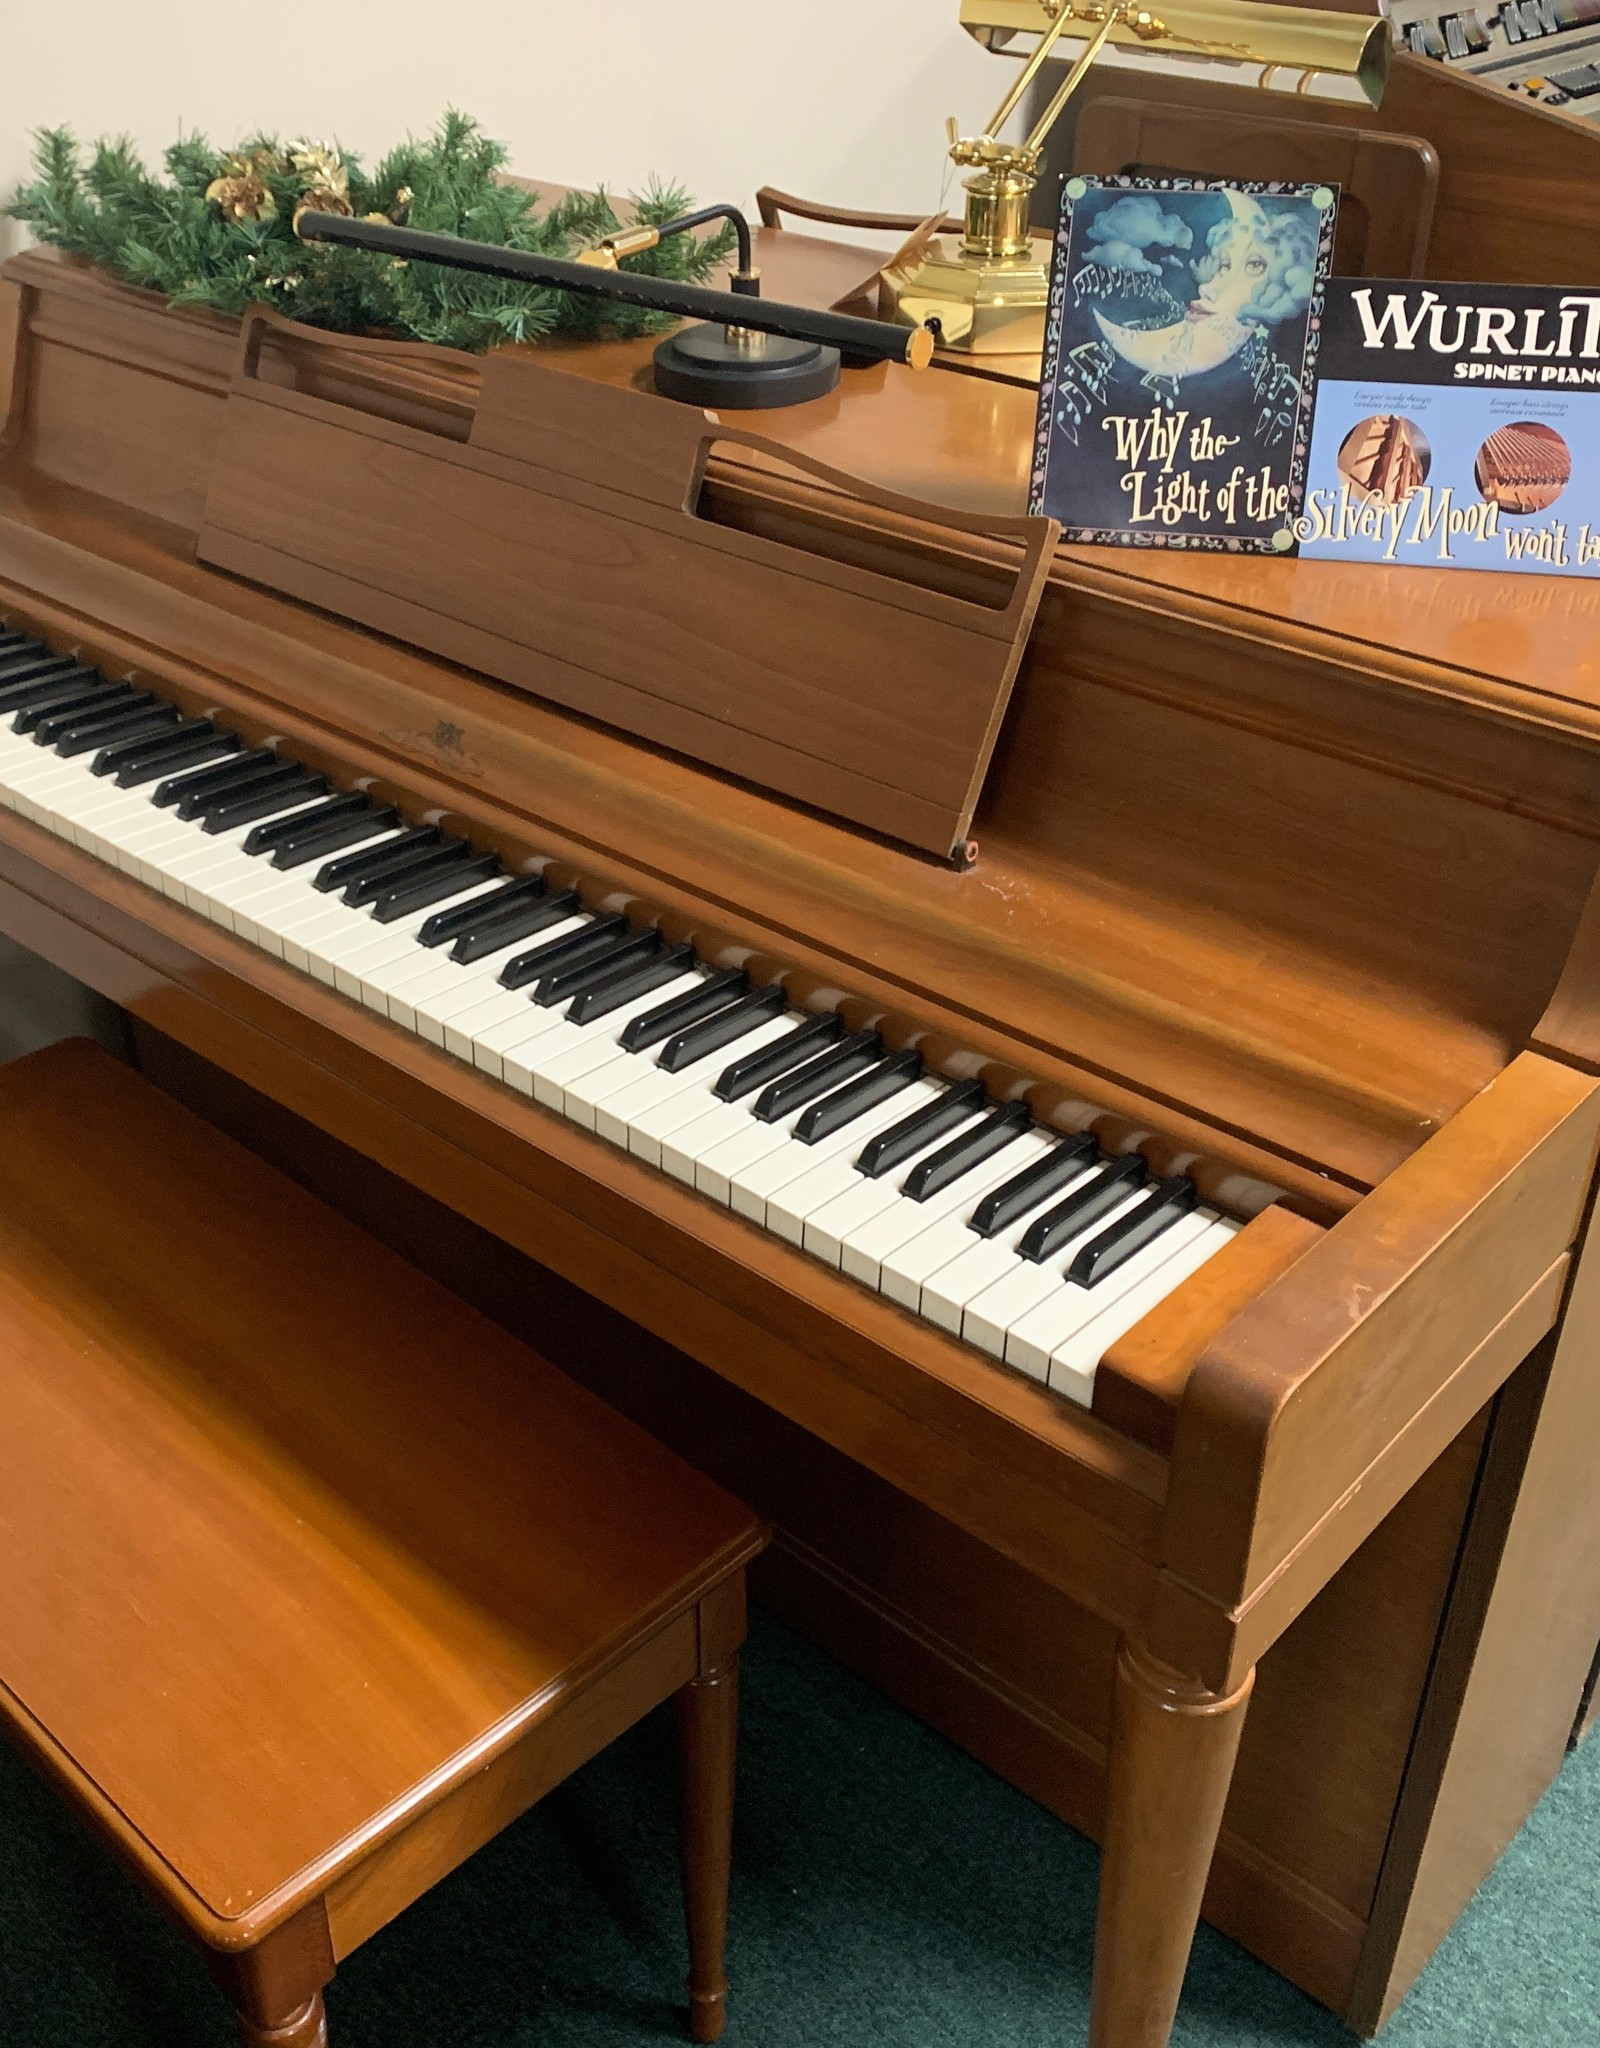 "Wurlitzer Wurlitzer Spinnet 37"" Vertical Piano (Pecan) (pre-owned)"